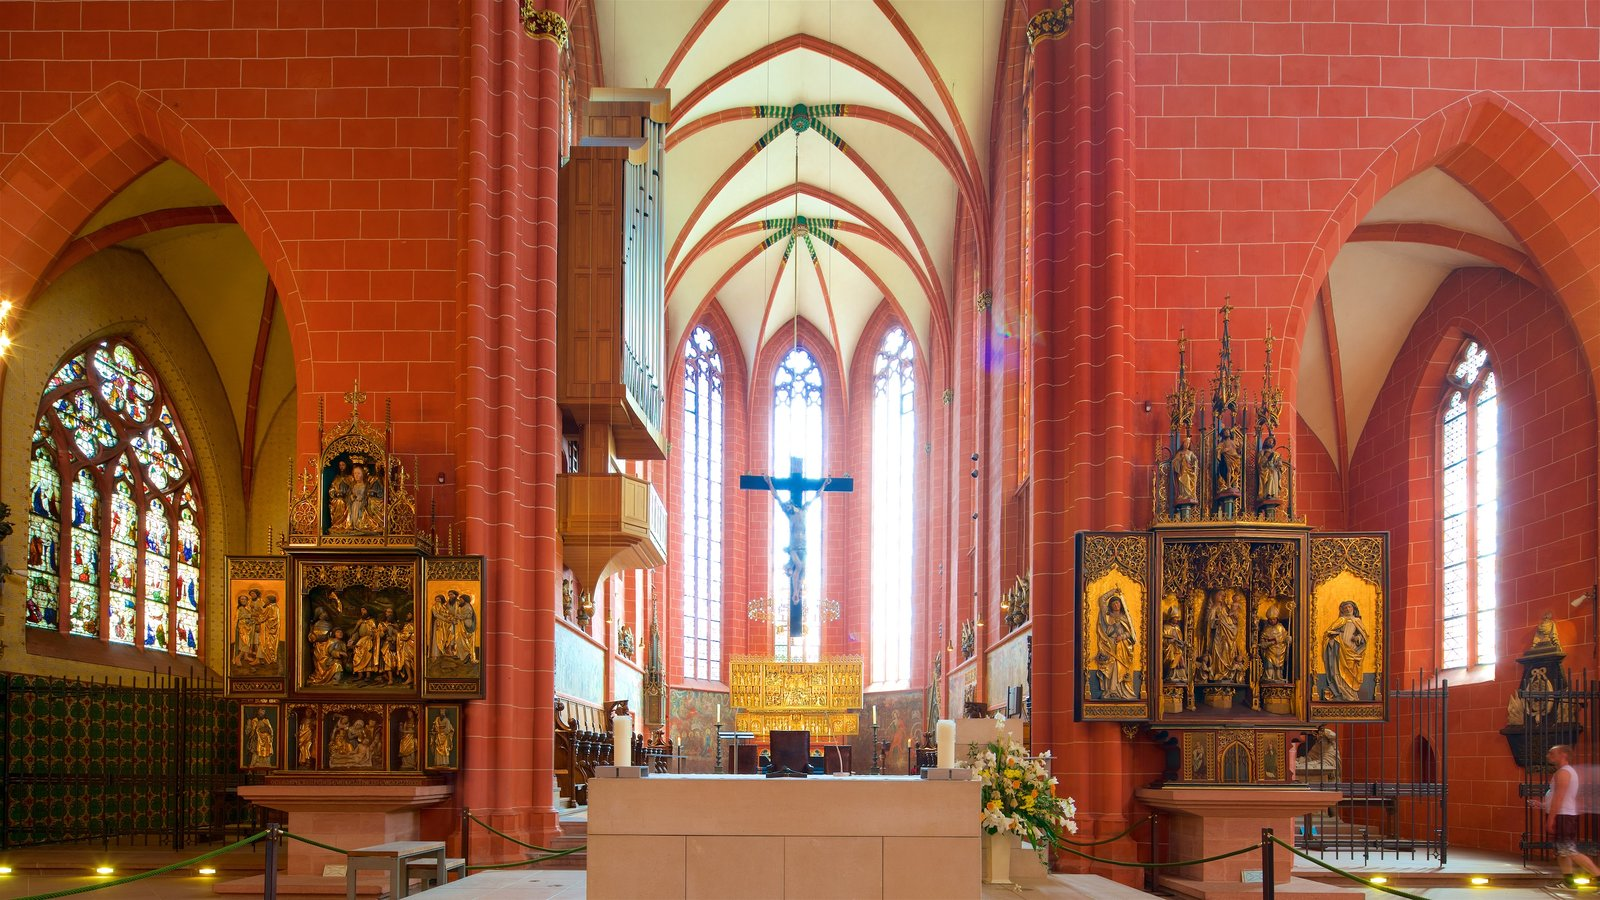 religious pictures view images of frankfurt cathedral. Black Bedroom Furniture Sets. Home Design Ideas